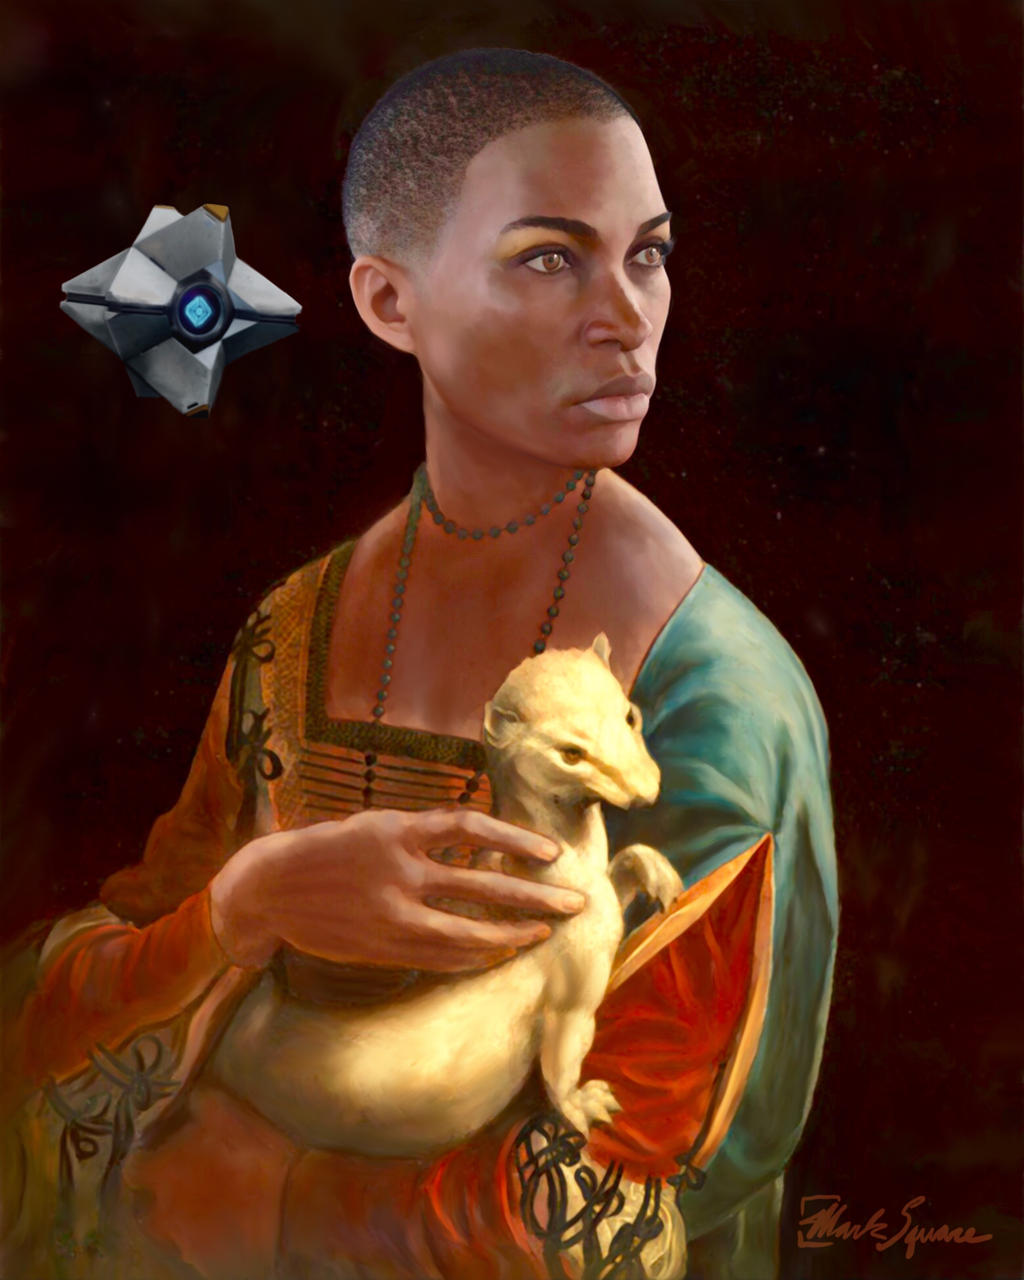 The Ikora with the Ermine by marksquare